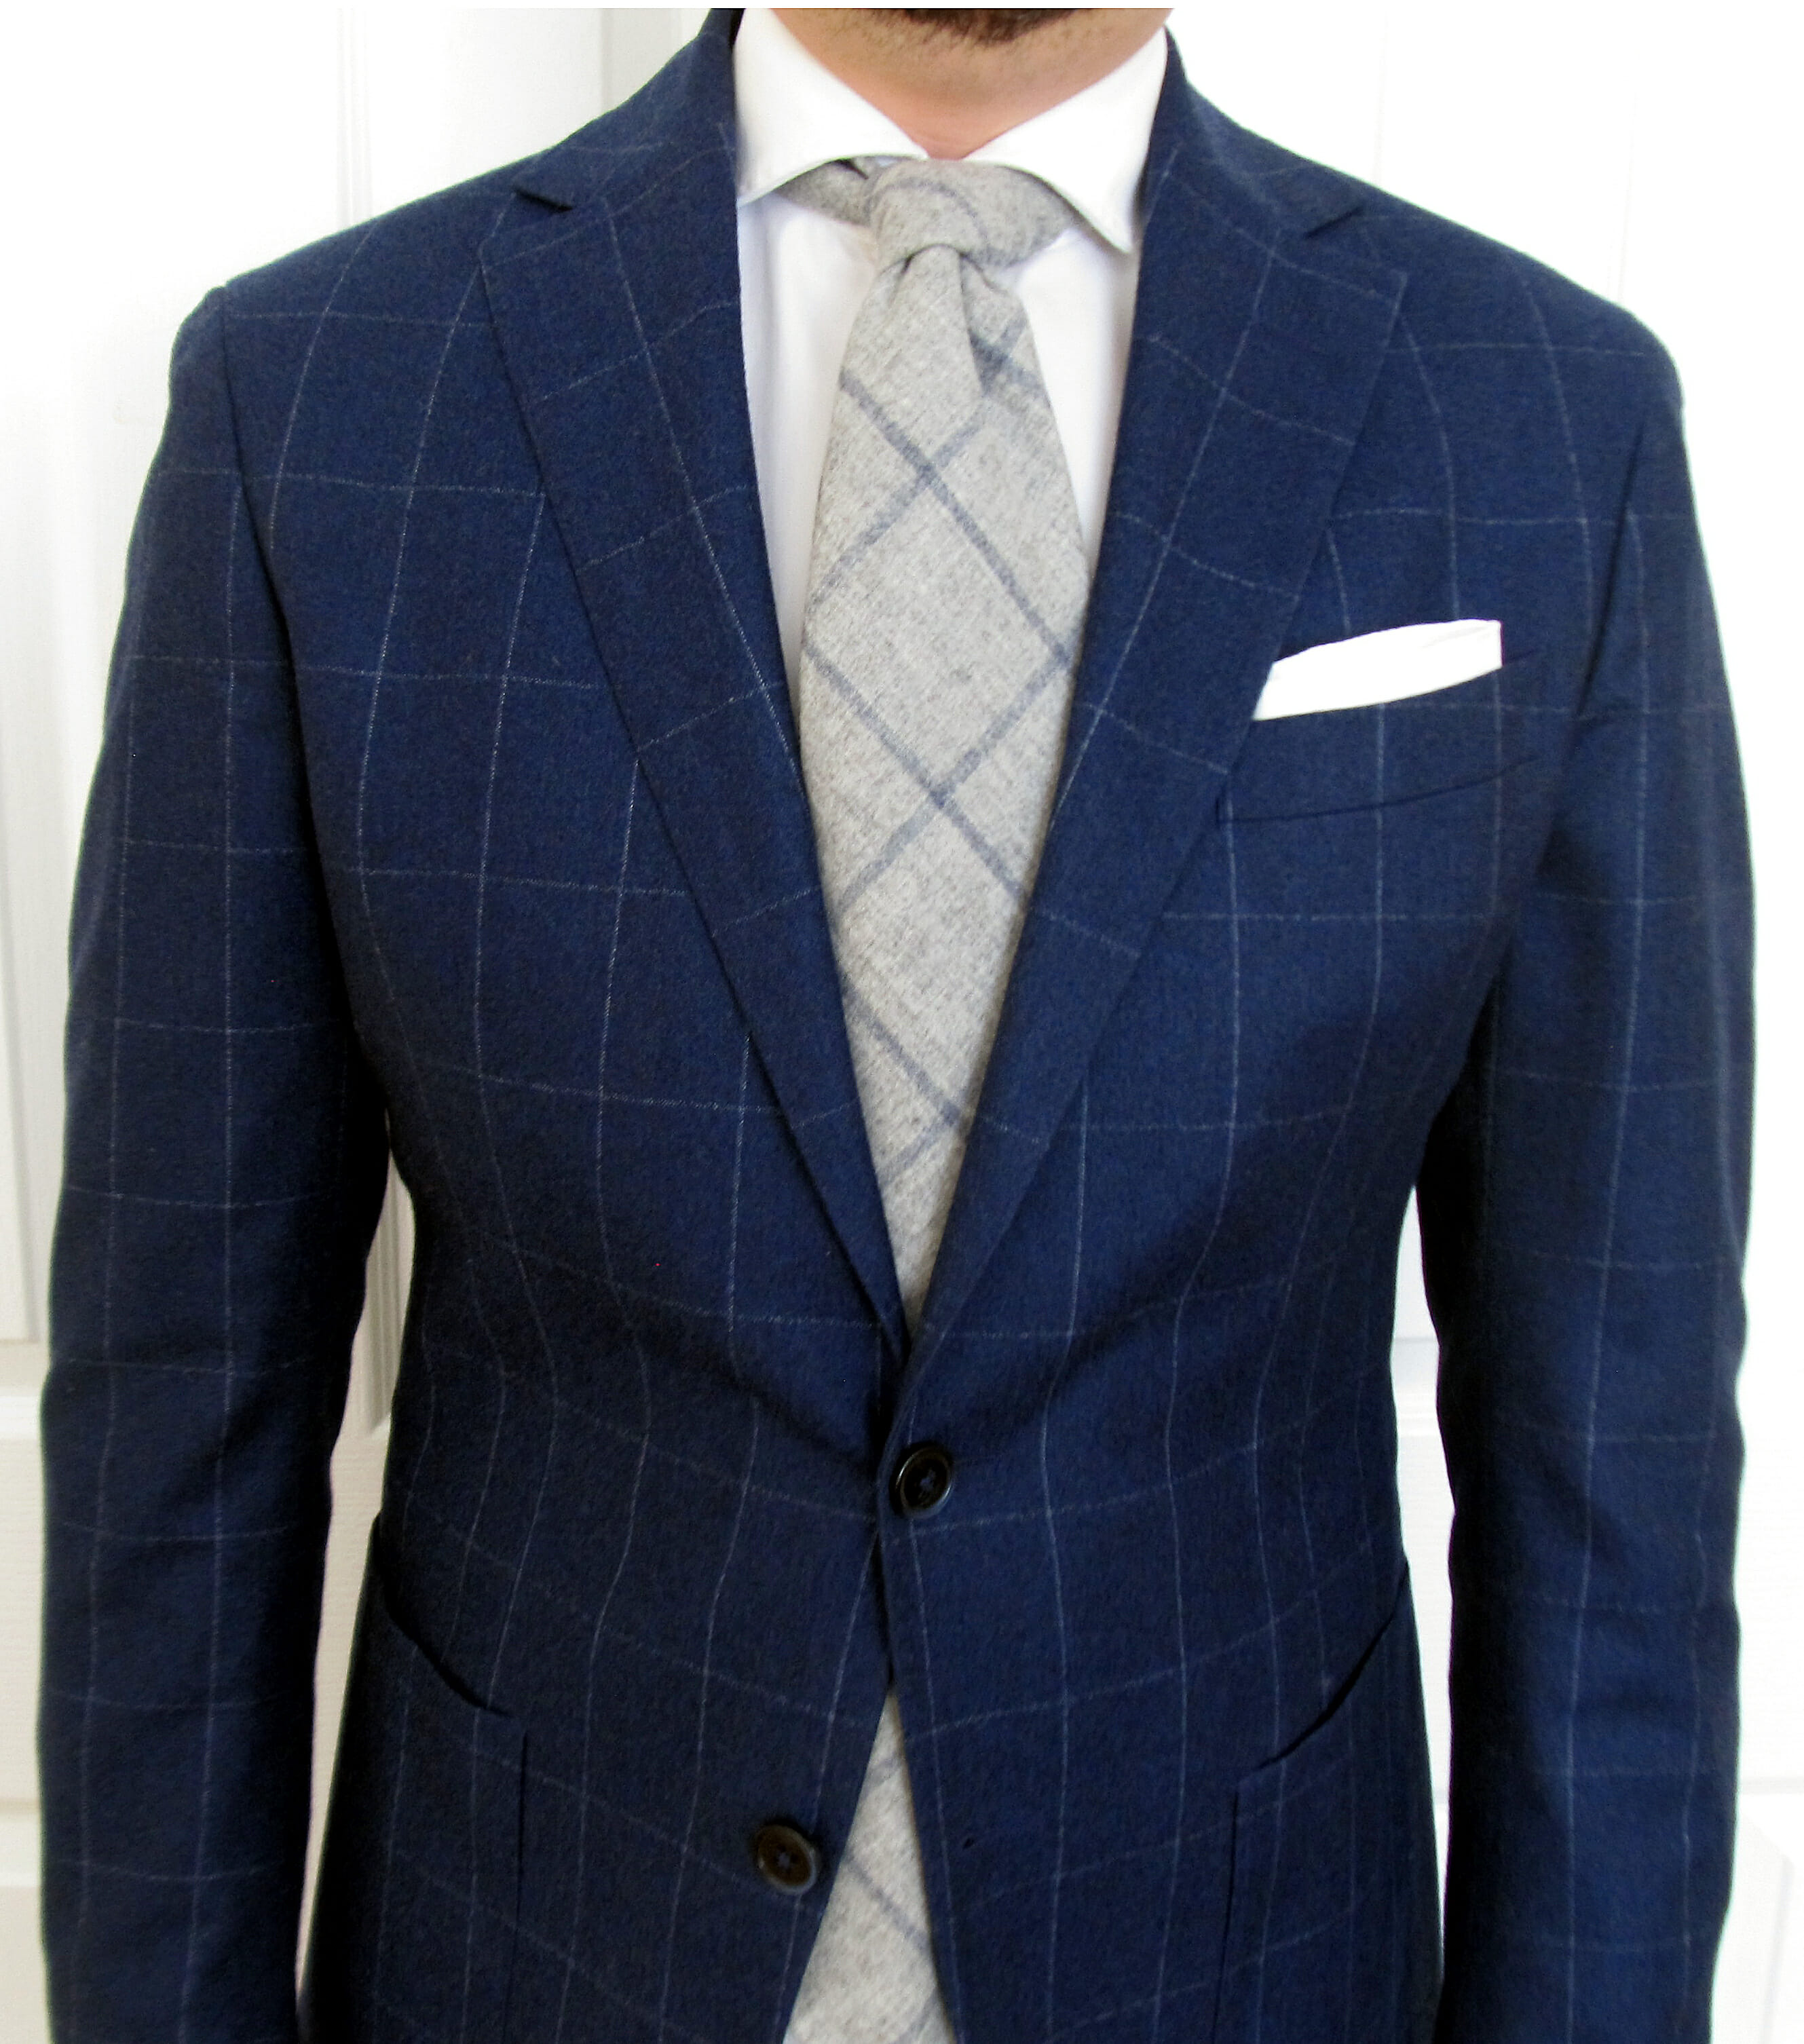 How To Wear Blue Gray A Classic Menswear Color Combination Tendencies Navy Chinos Short 28 Windowpane Suit With Tie